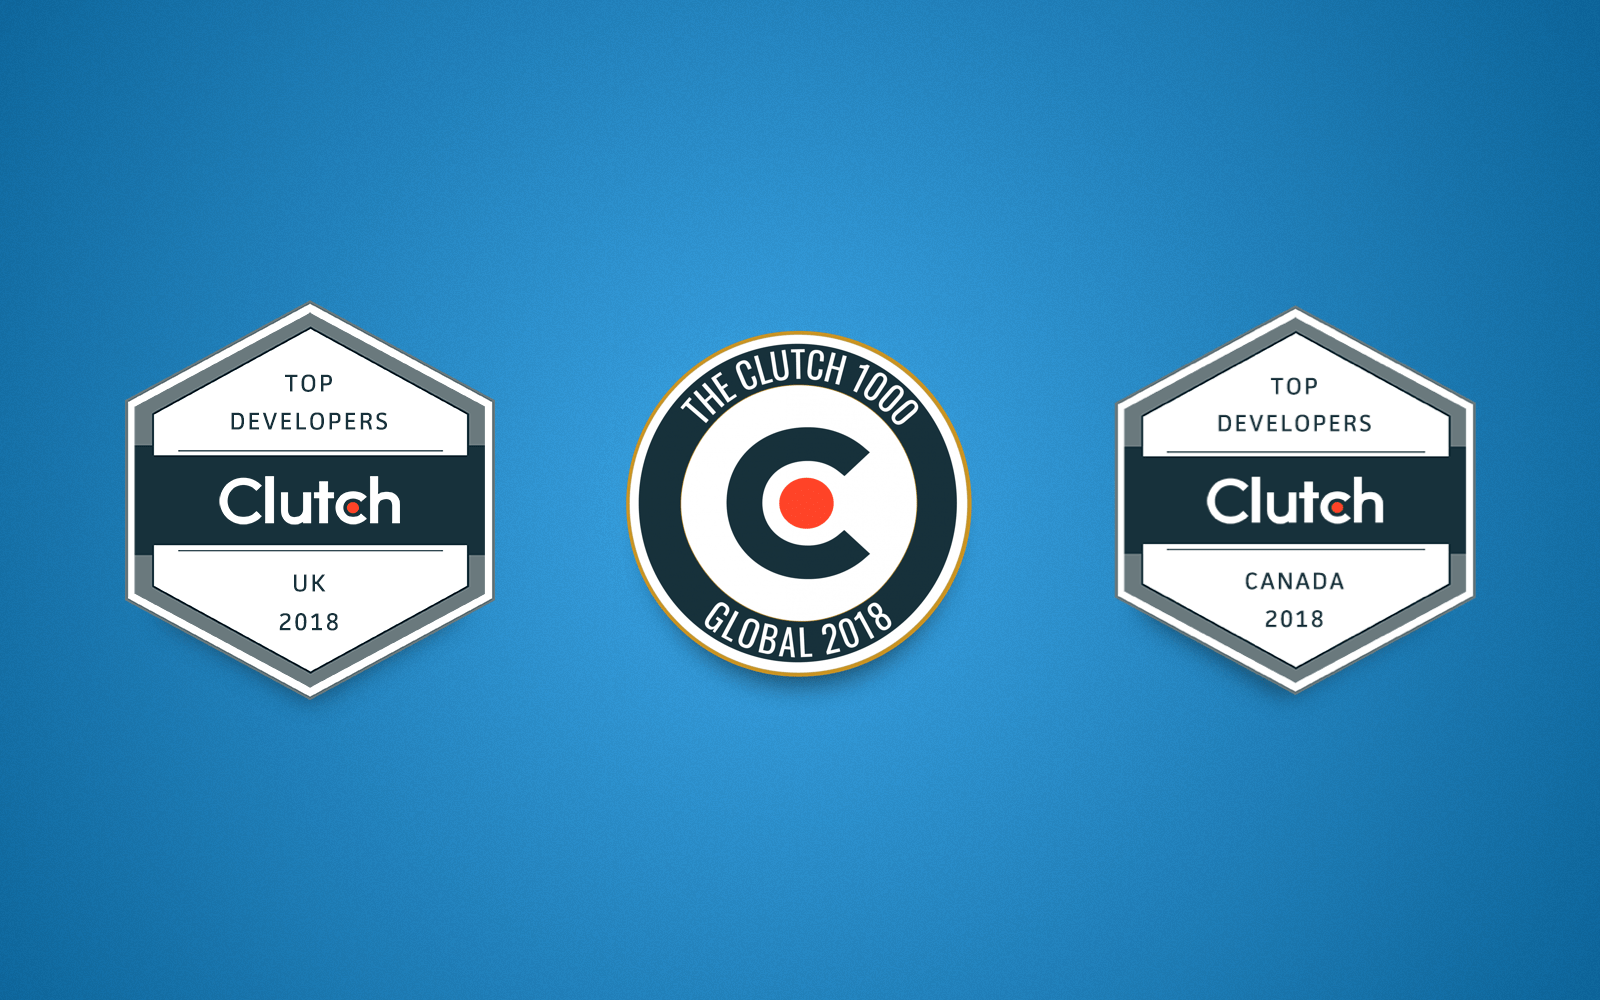 Cleveroad was recognized as Top Developer in the UK and hit the Clutch 1000 global